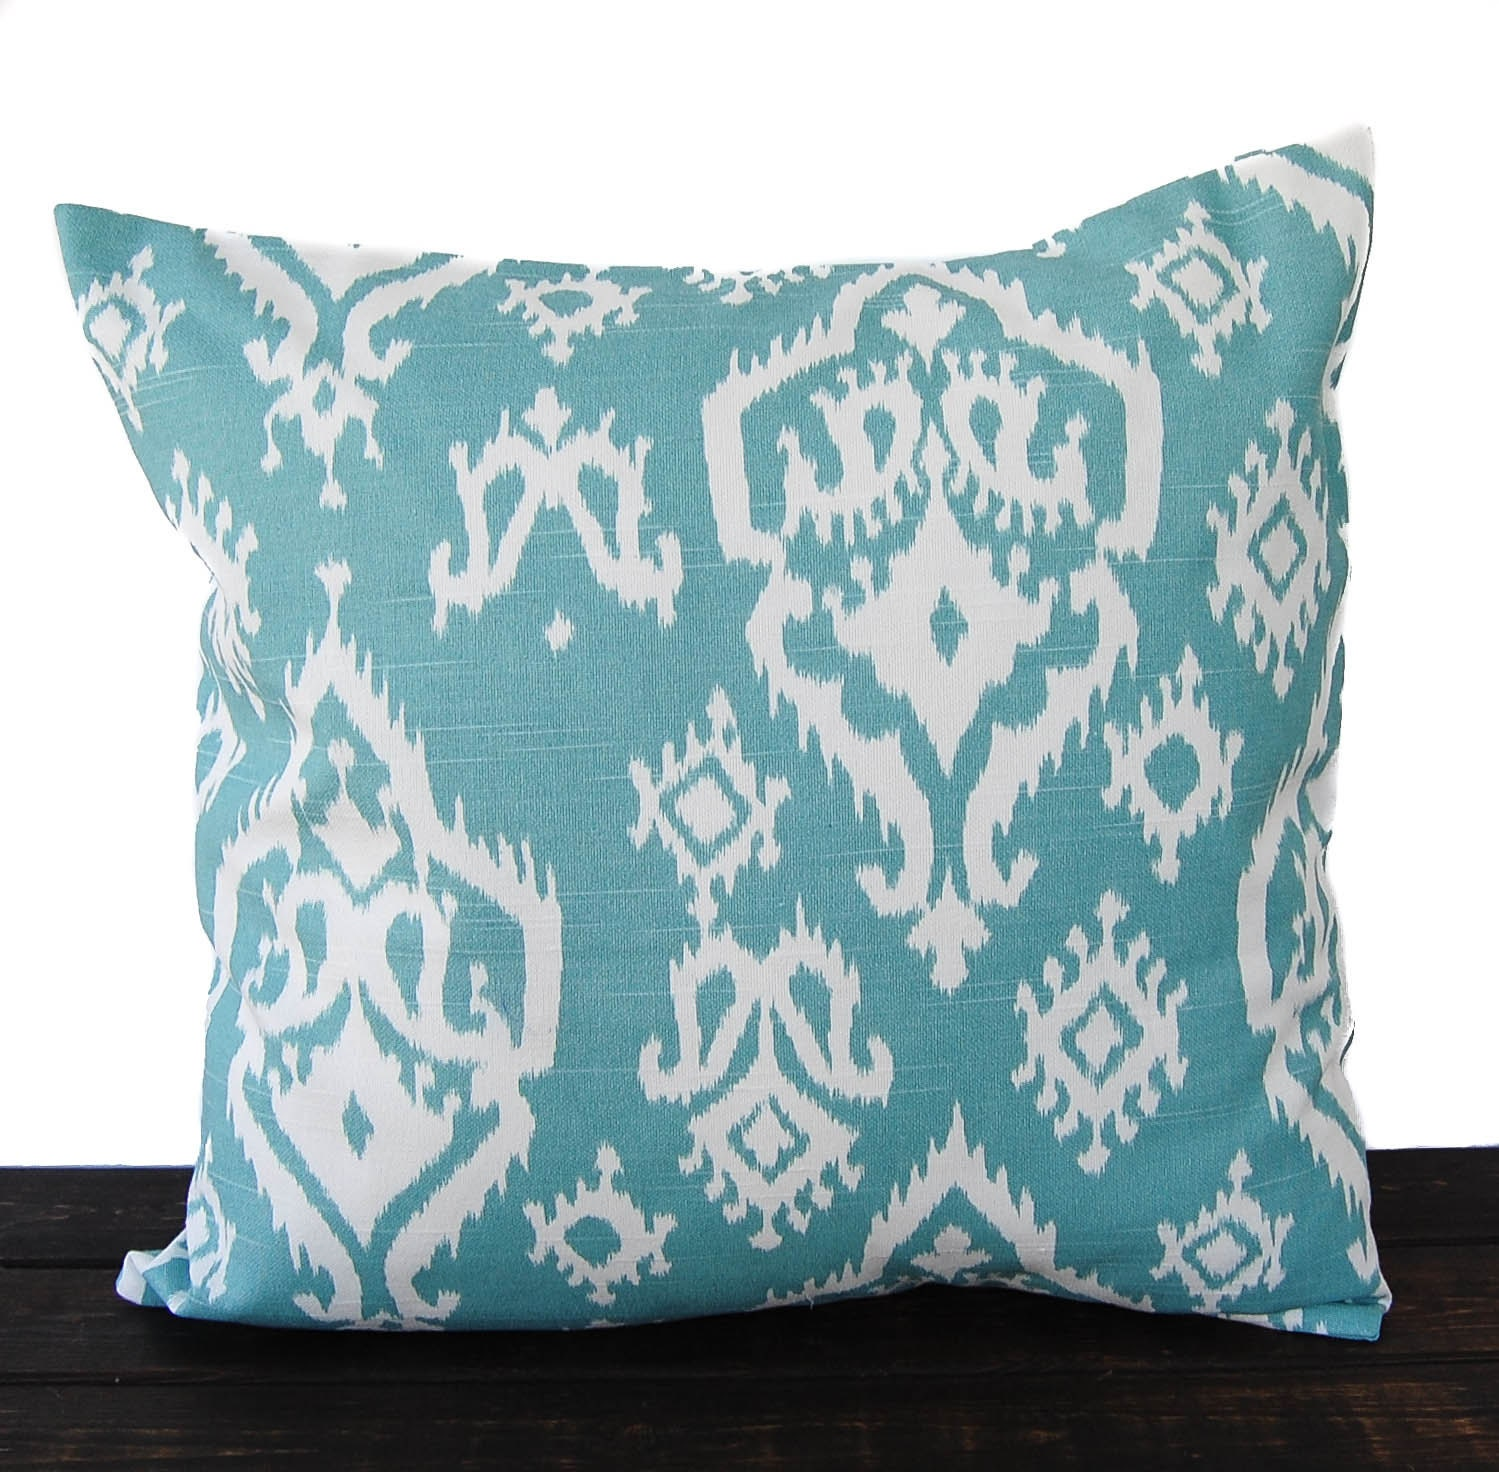 Throw Pillow Cover Cushion Cover Light Teal Blue White Pillow